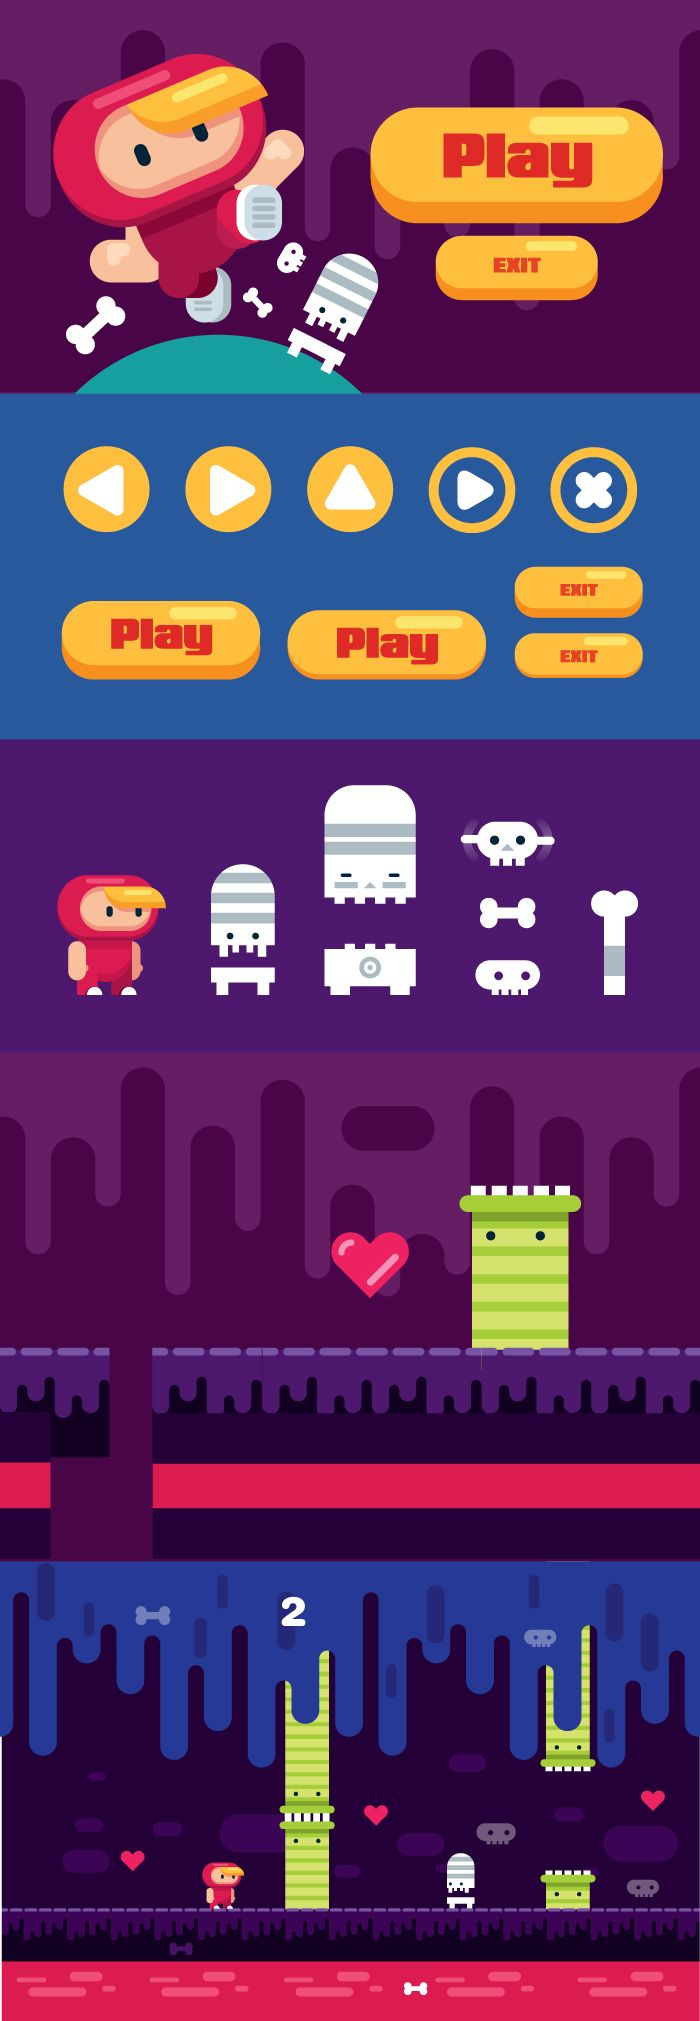 2d platformer game design template pack flat game design 2d platformer game design template pack flat game design pinterest 2d animation and icons maxwellsz